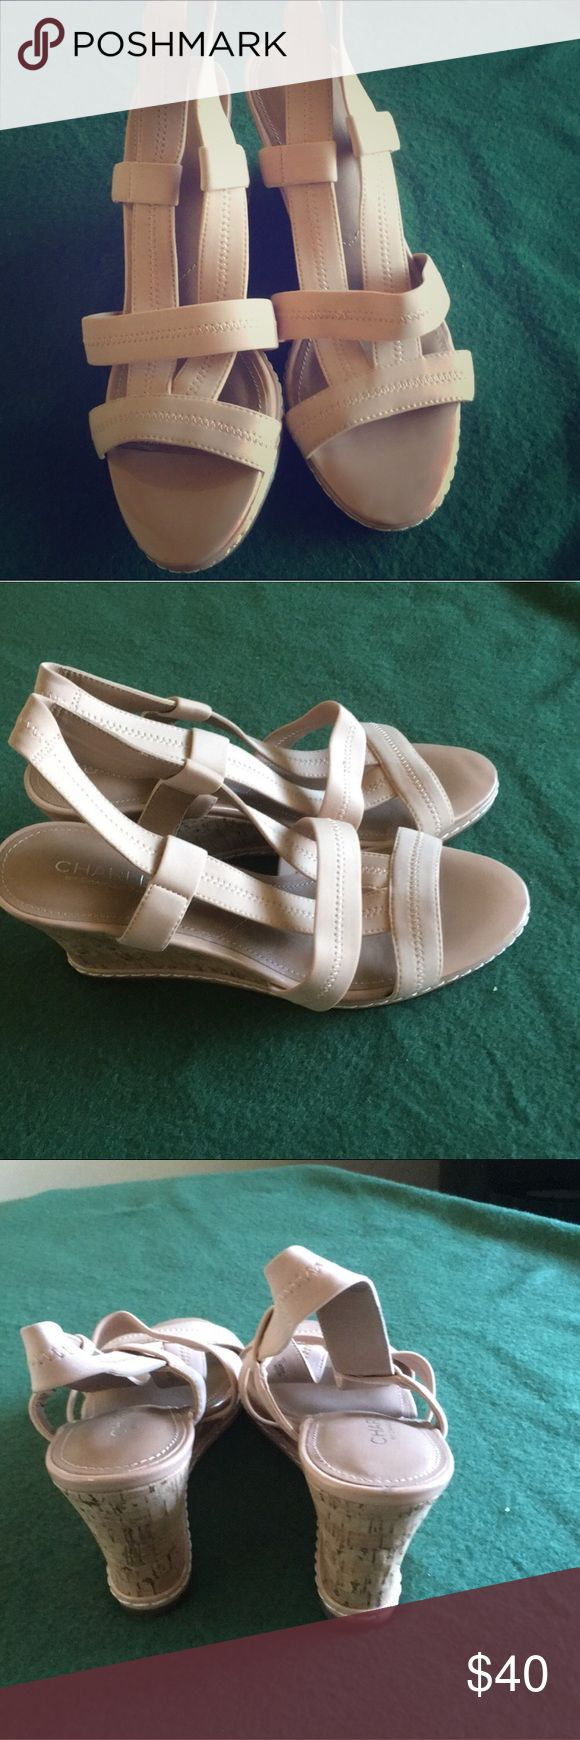 BRAND NEW CHARLES BY CHARLES DAVIDS WOMENS SIZE 8 BRAND NEW WITHOUT BOX USED AS STORE DISPLAY FROM NORDSTROM  CHARLES BY CHARLES DAVID  SIZE 8 Charles David Shoes Heels